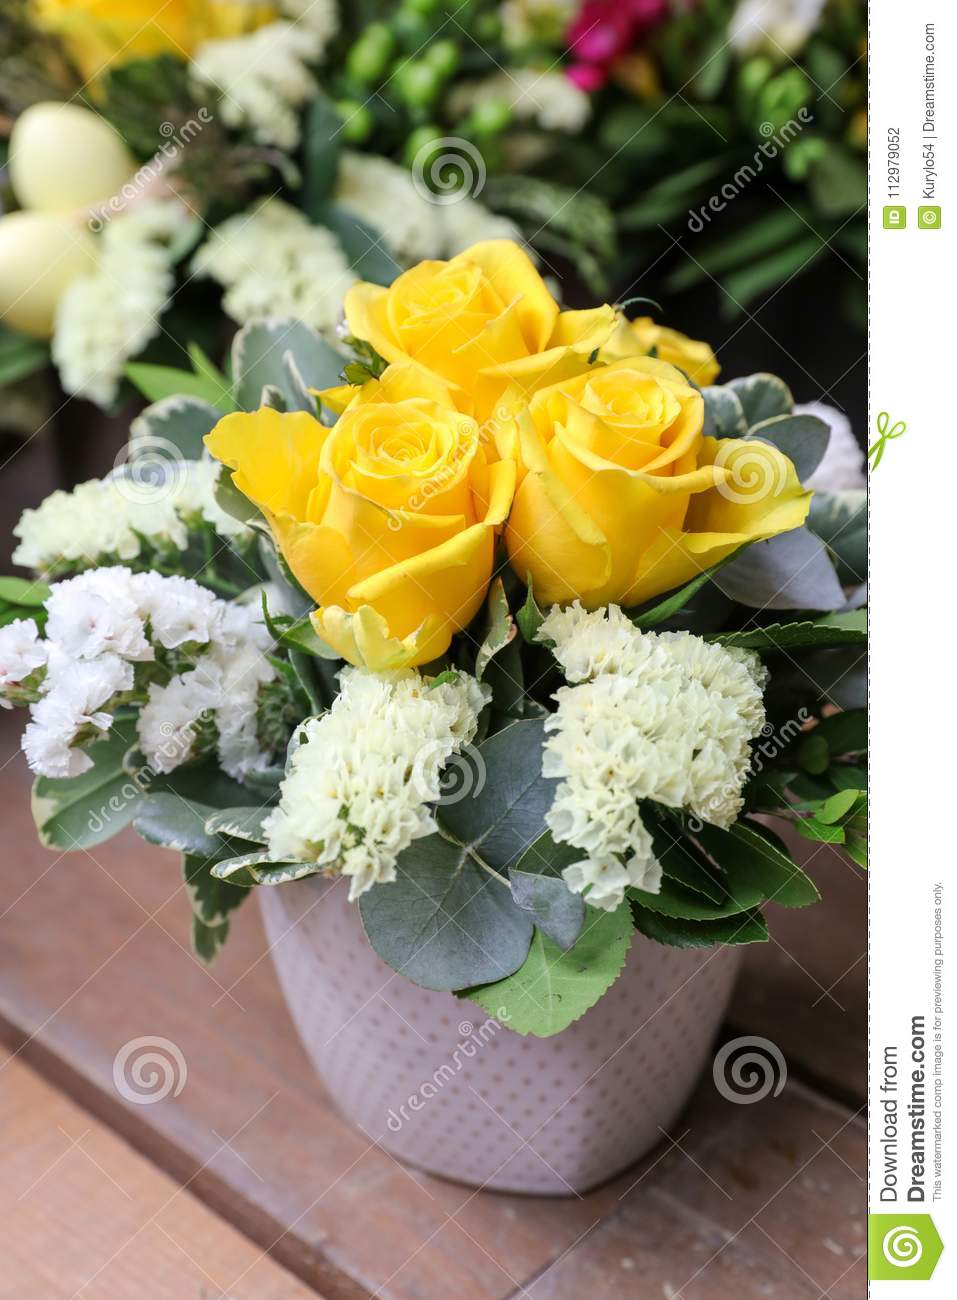 A beautiful bouquet of yellow roses and white kermek flowers in the vase.